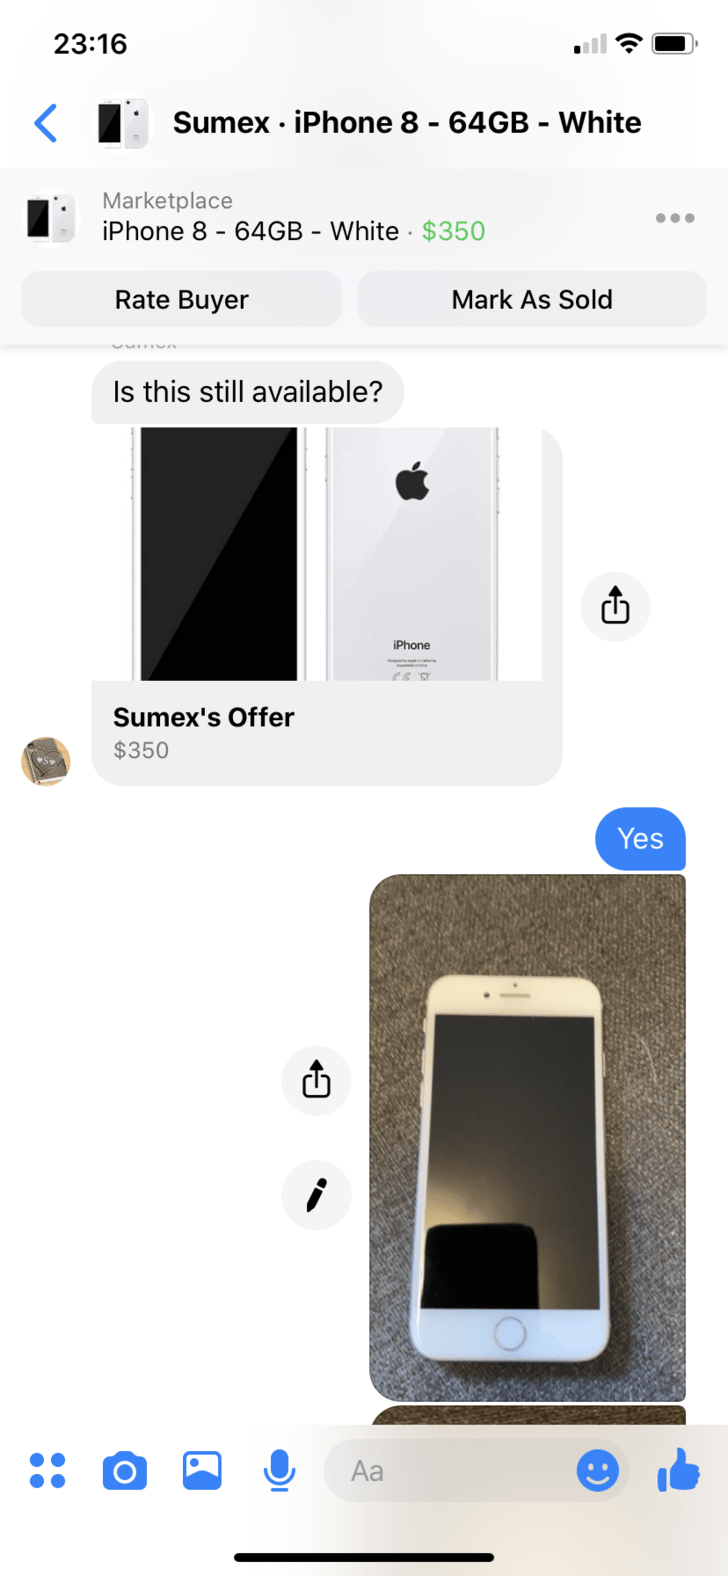 Product - 23:16 Sumex iPhone 8 - 64GB - White Marketplace iPhone 8 - 64GB - White $350 Rate Buyer Mark As Sold Is this still available? iPhone Sumex's Offer $350 Yes Aa